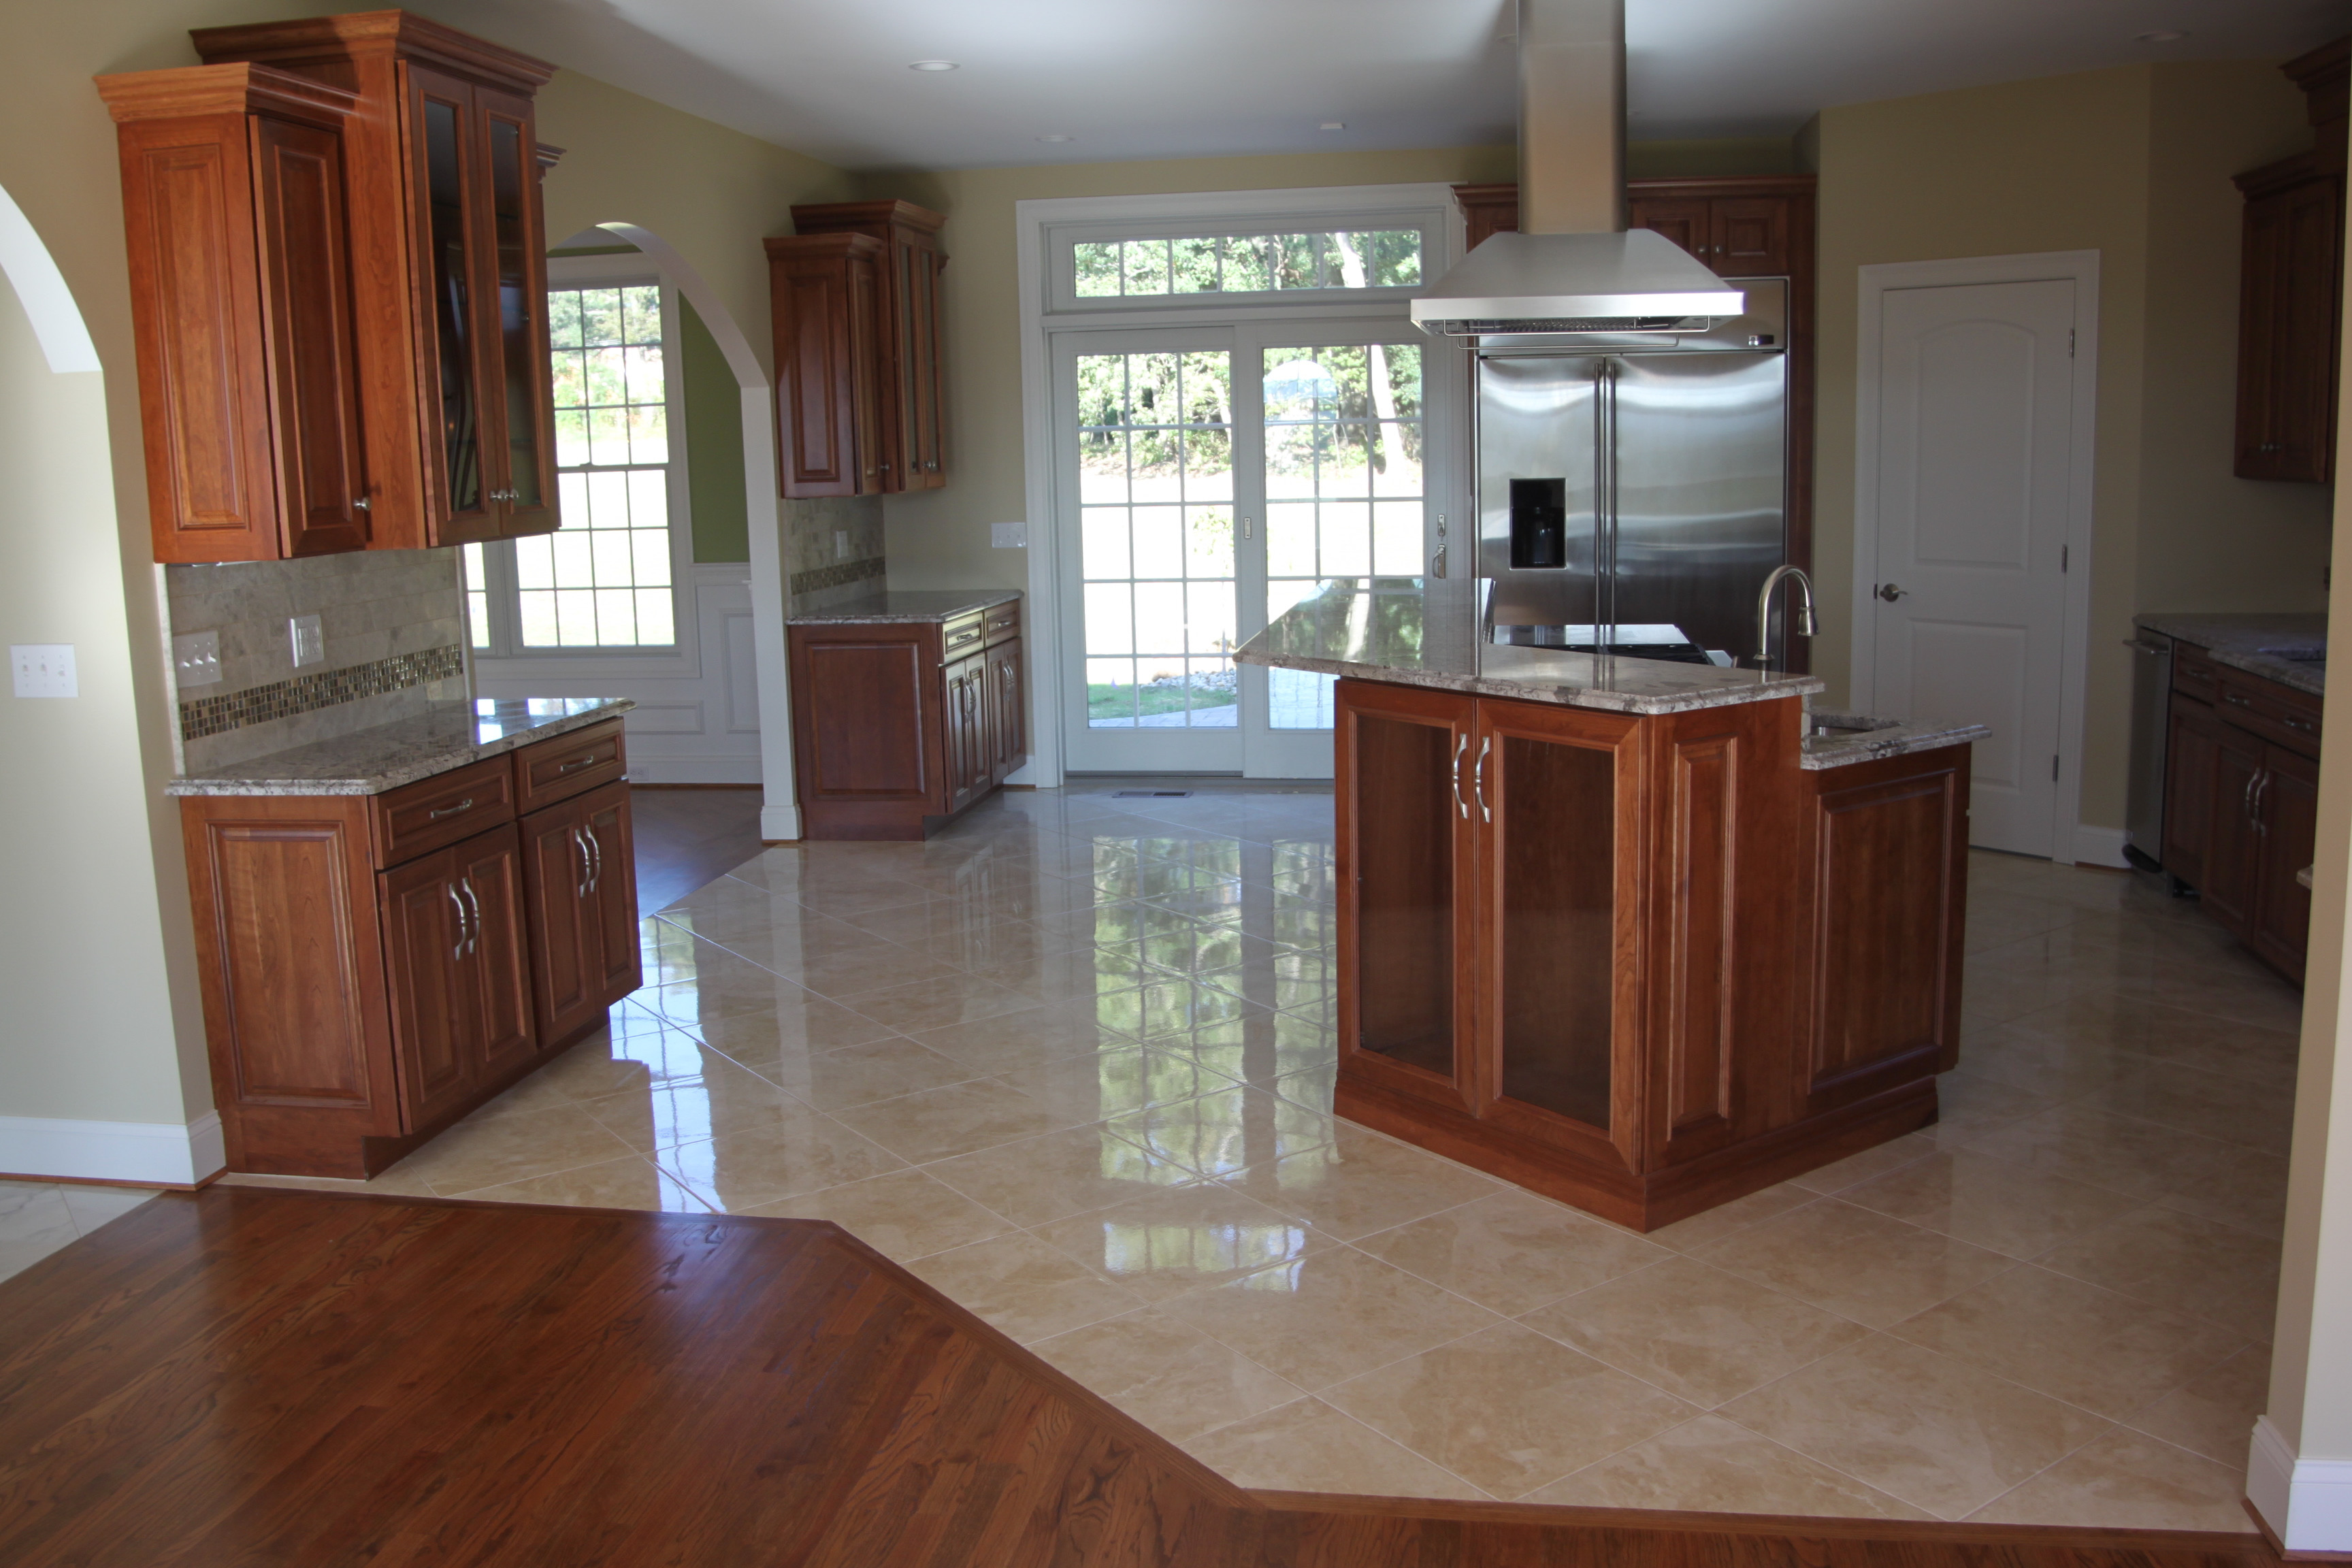 15 Unique Hardwood Floor Layout Ideas 2021 free download hardwood floor layout ideas of should your flooring match your kitchen cabinets or countertops throughout floor wall tile